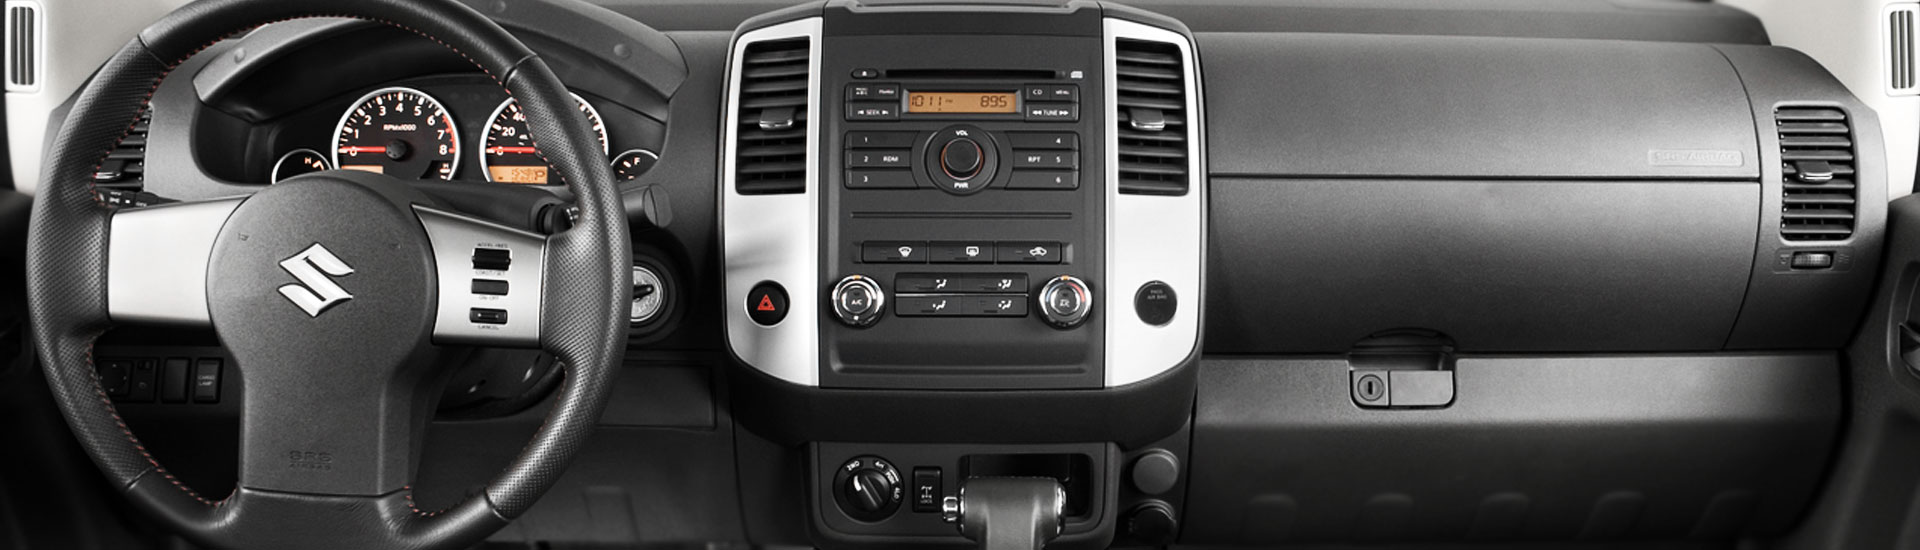 2011 Suzuki Kizashi Custom Dash Kits